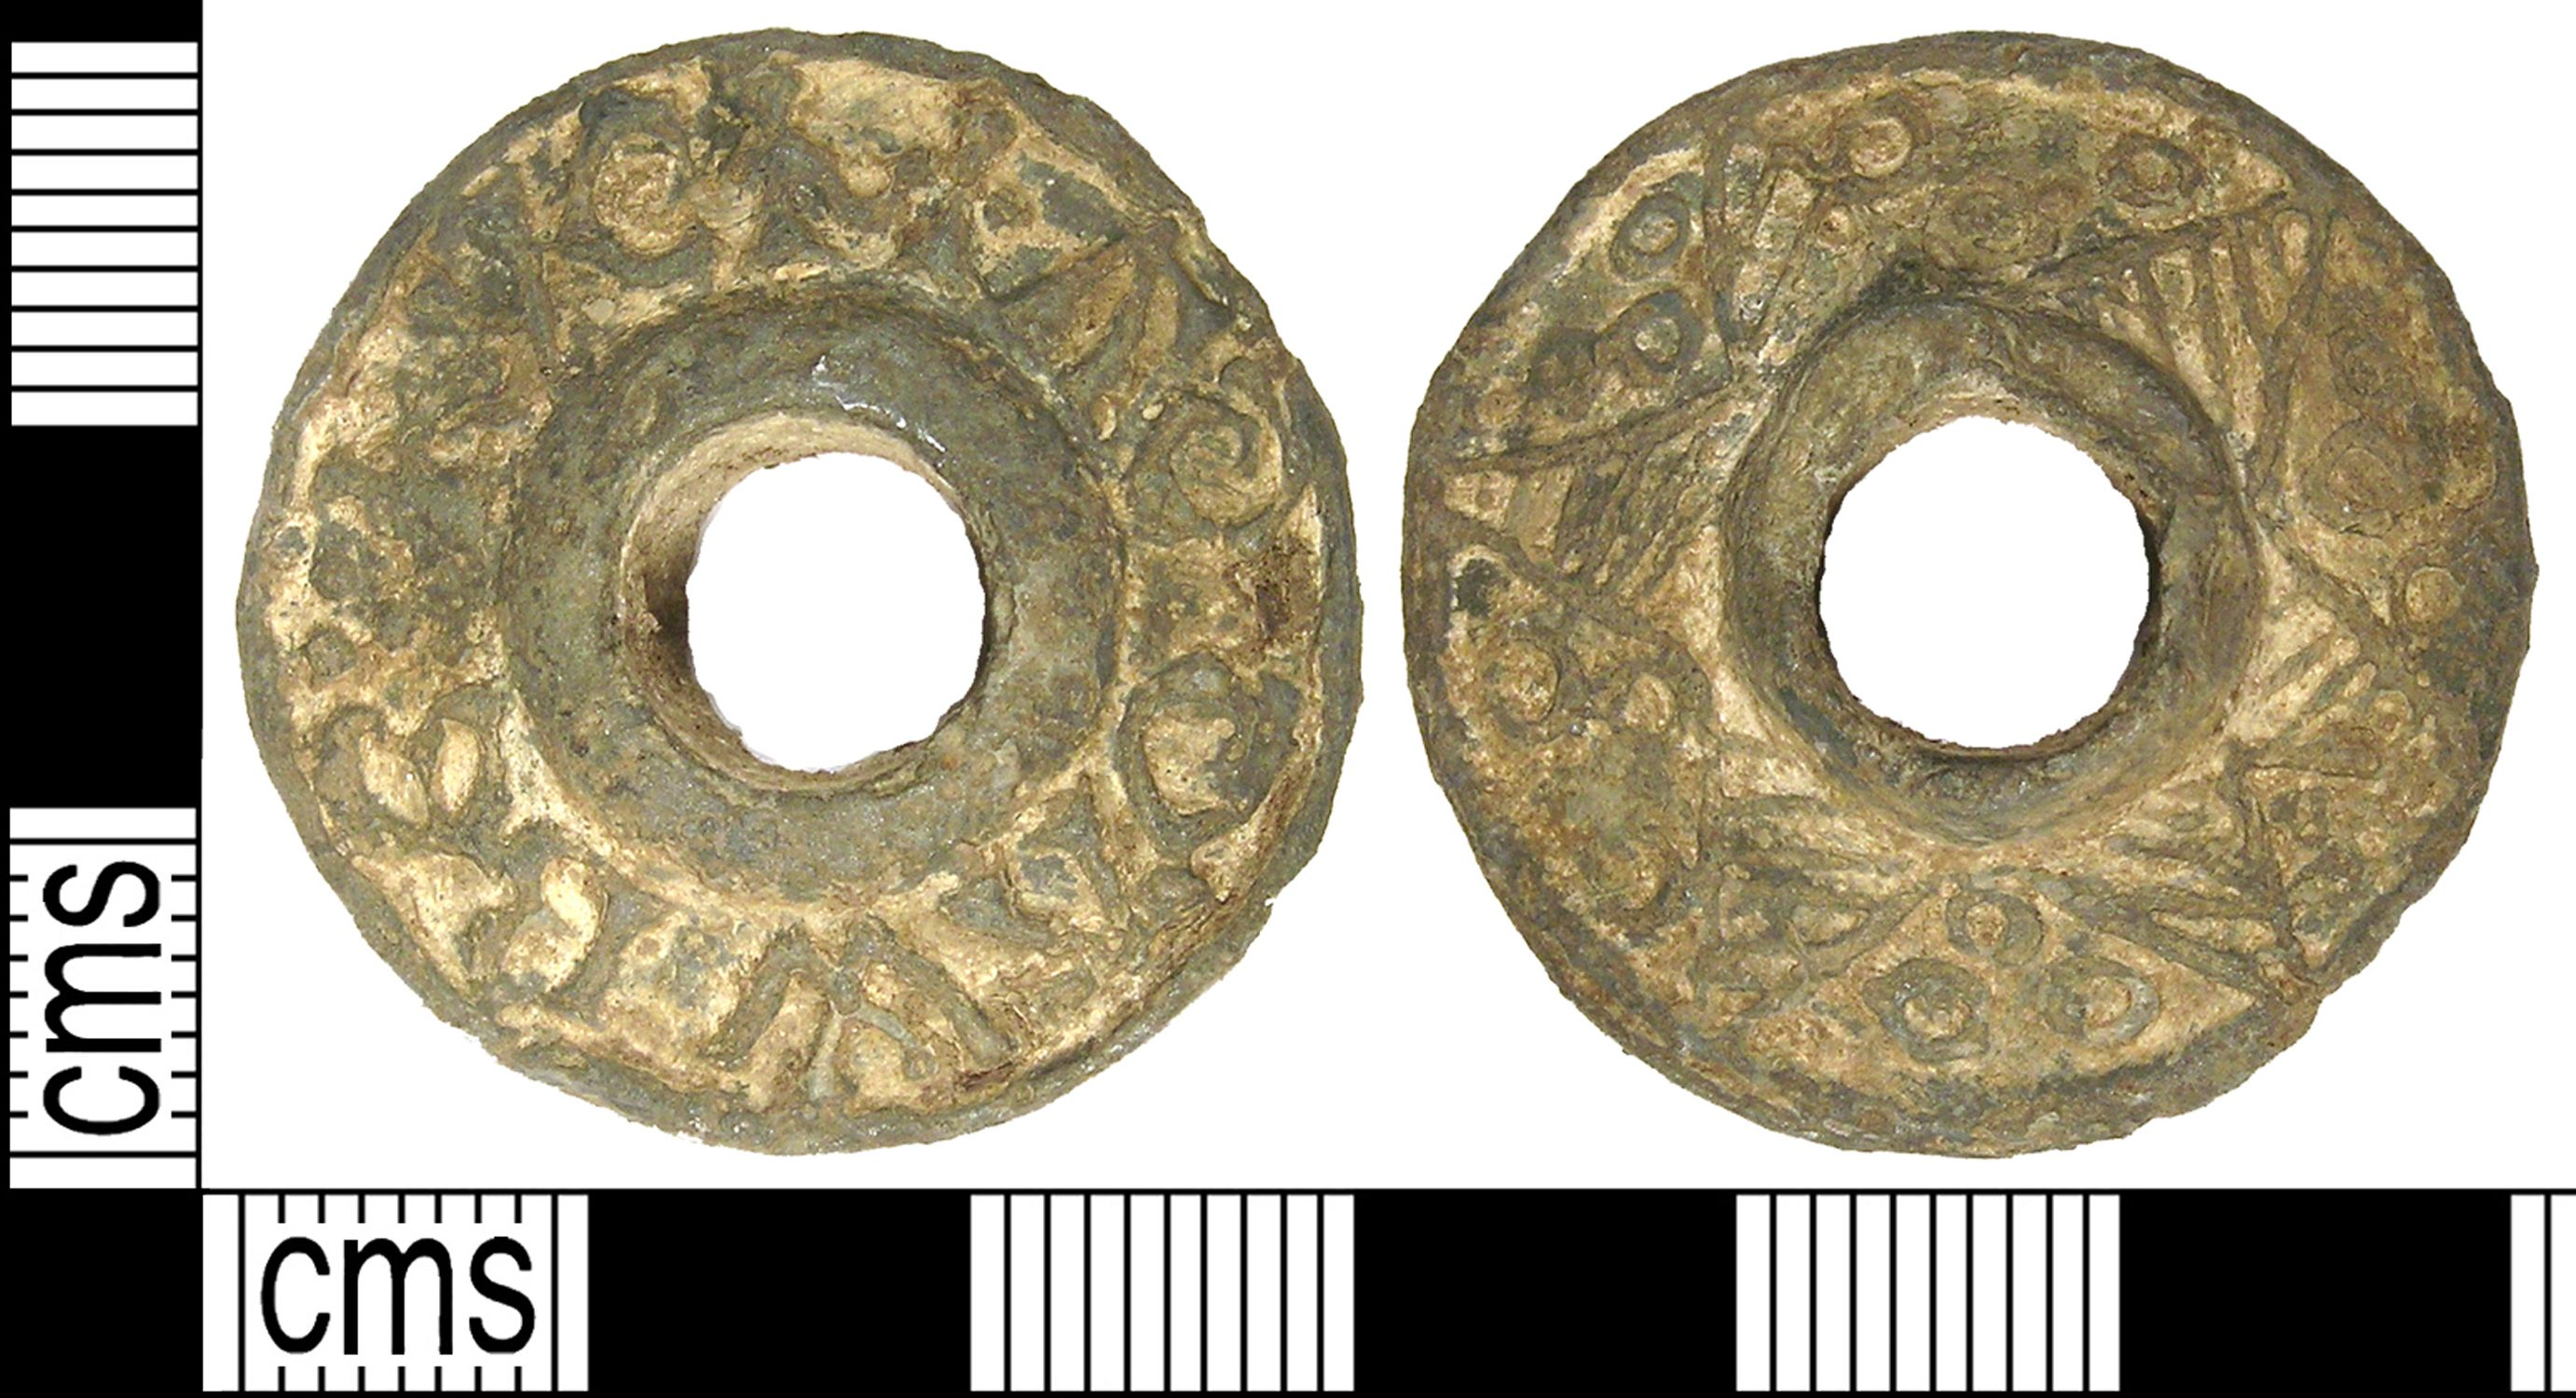 Dating lead spindle whorls